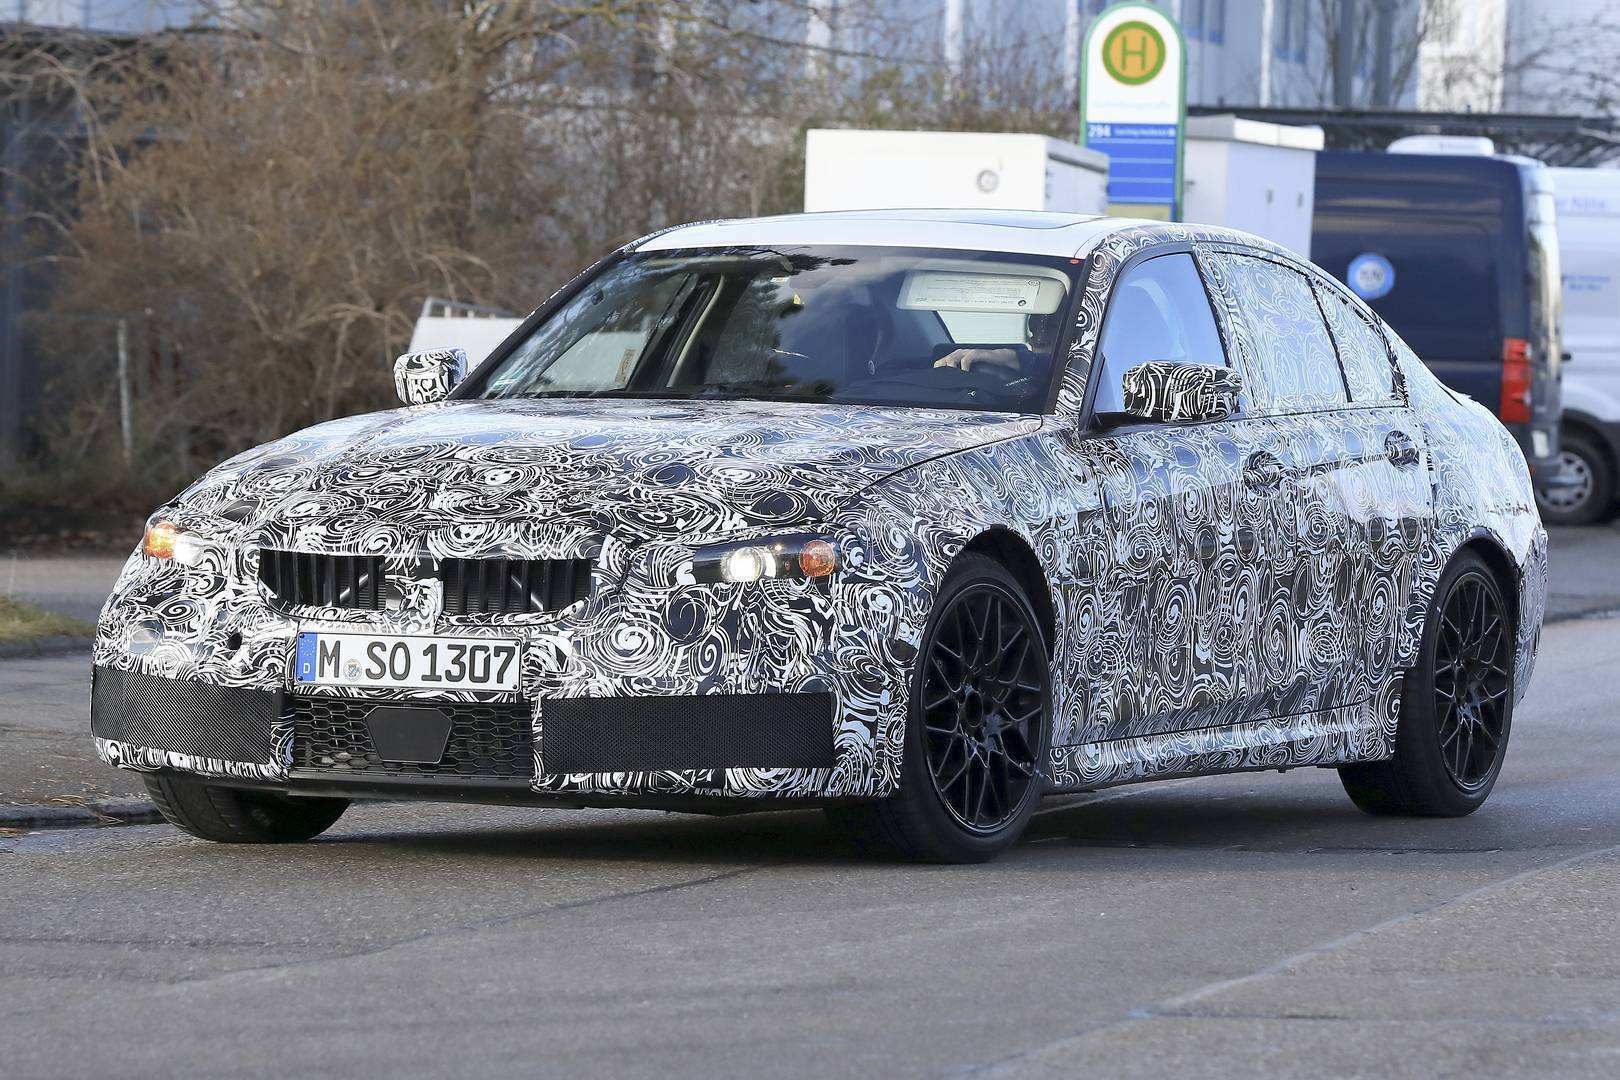 96 Great 2020 Bmw G80 Rumors by 2020 Bmw G80